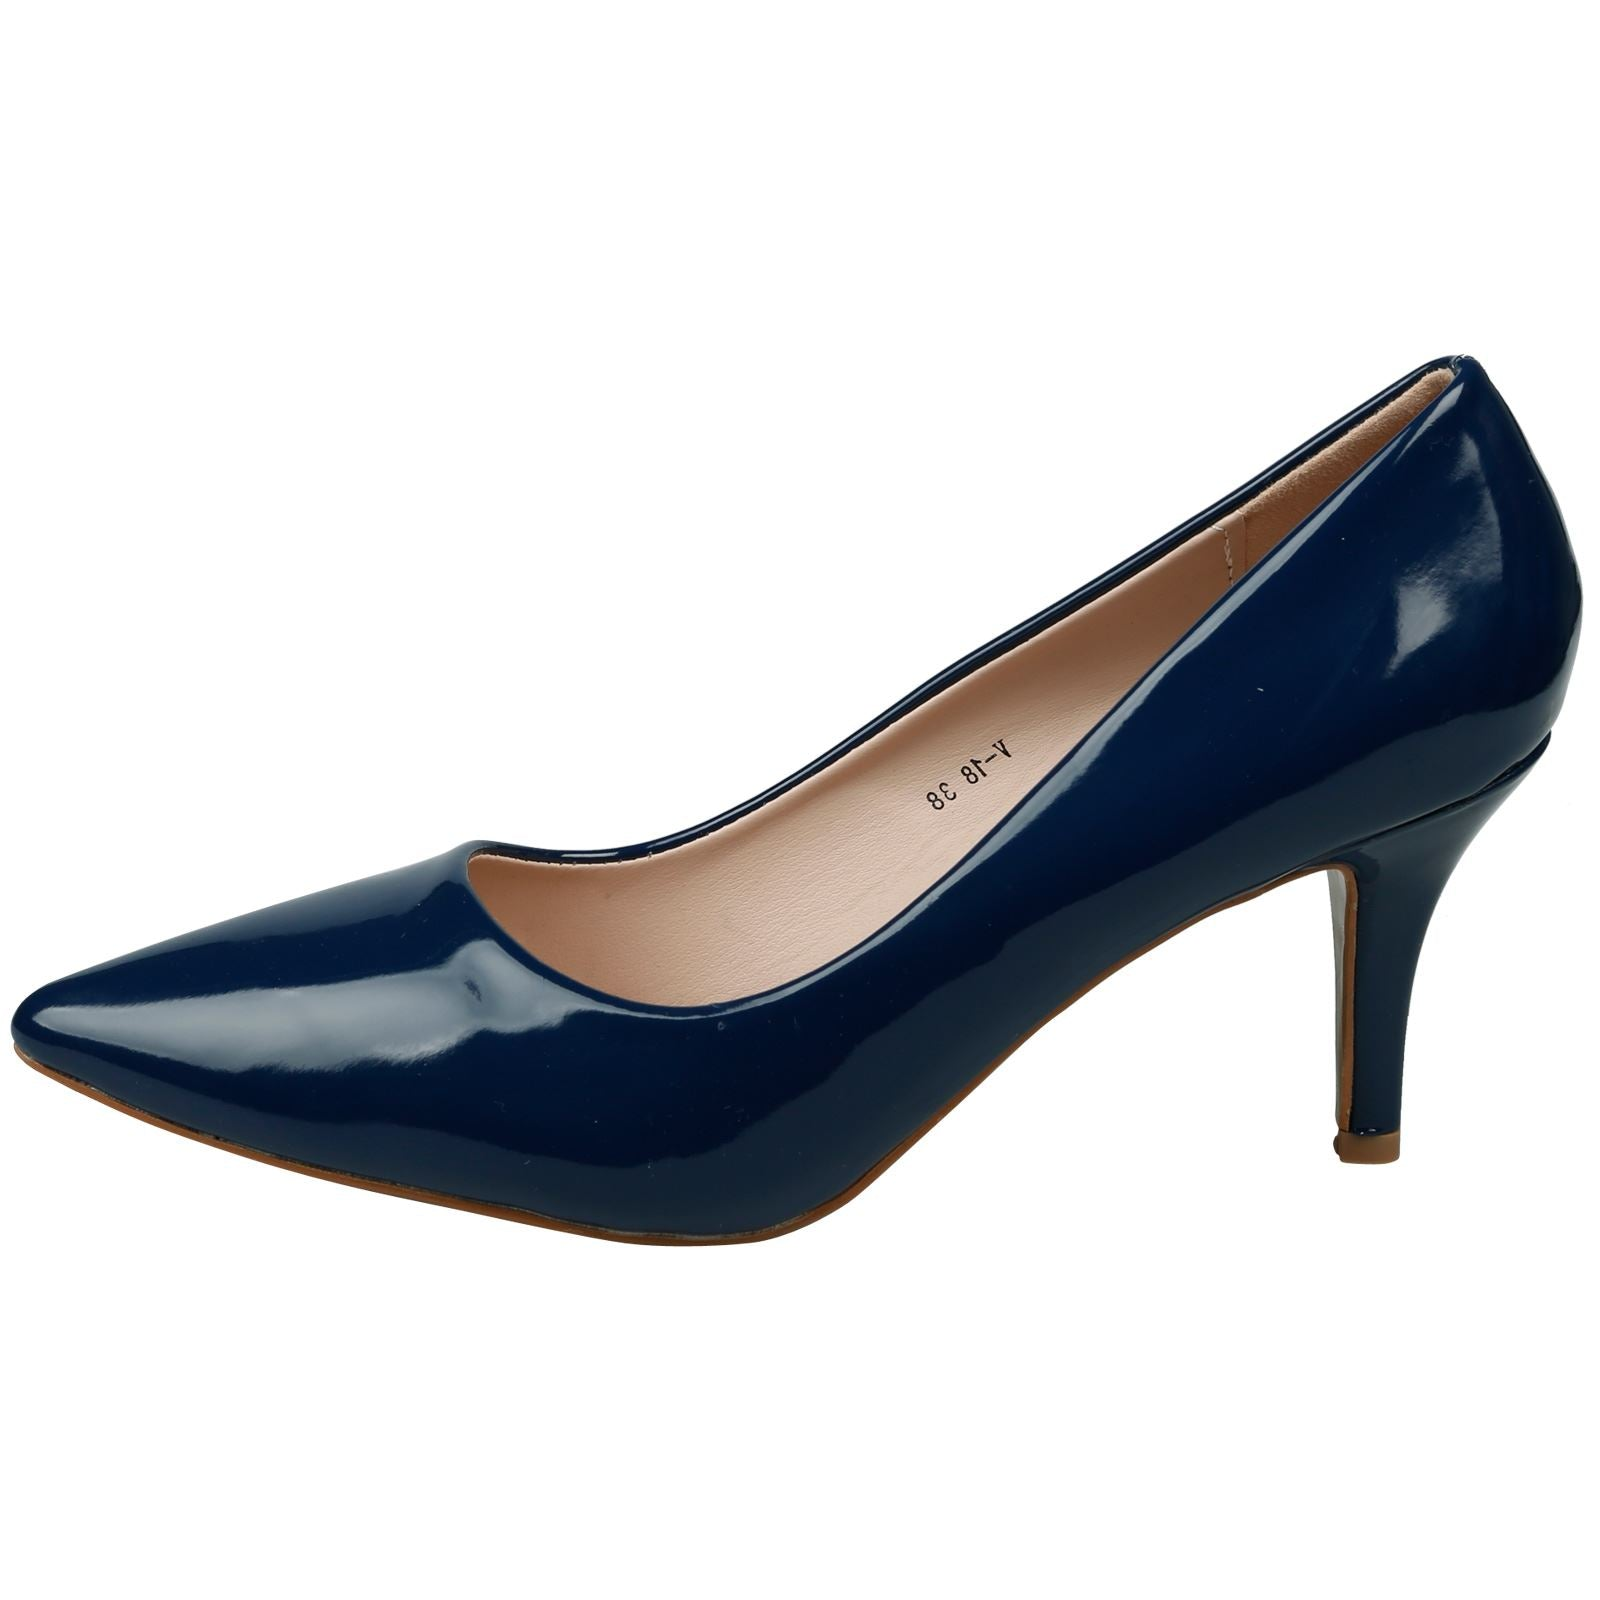 Maude Kitten Heel Pointed Toe Court Shoes in Navy Blue Patent